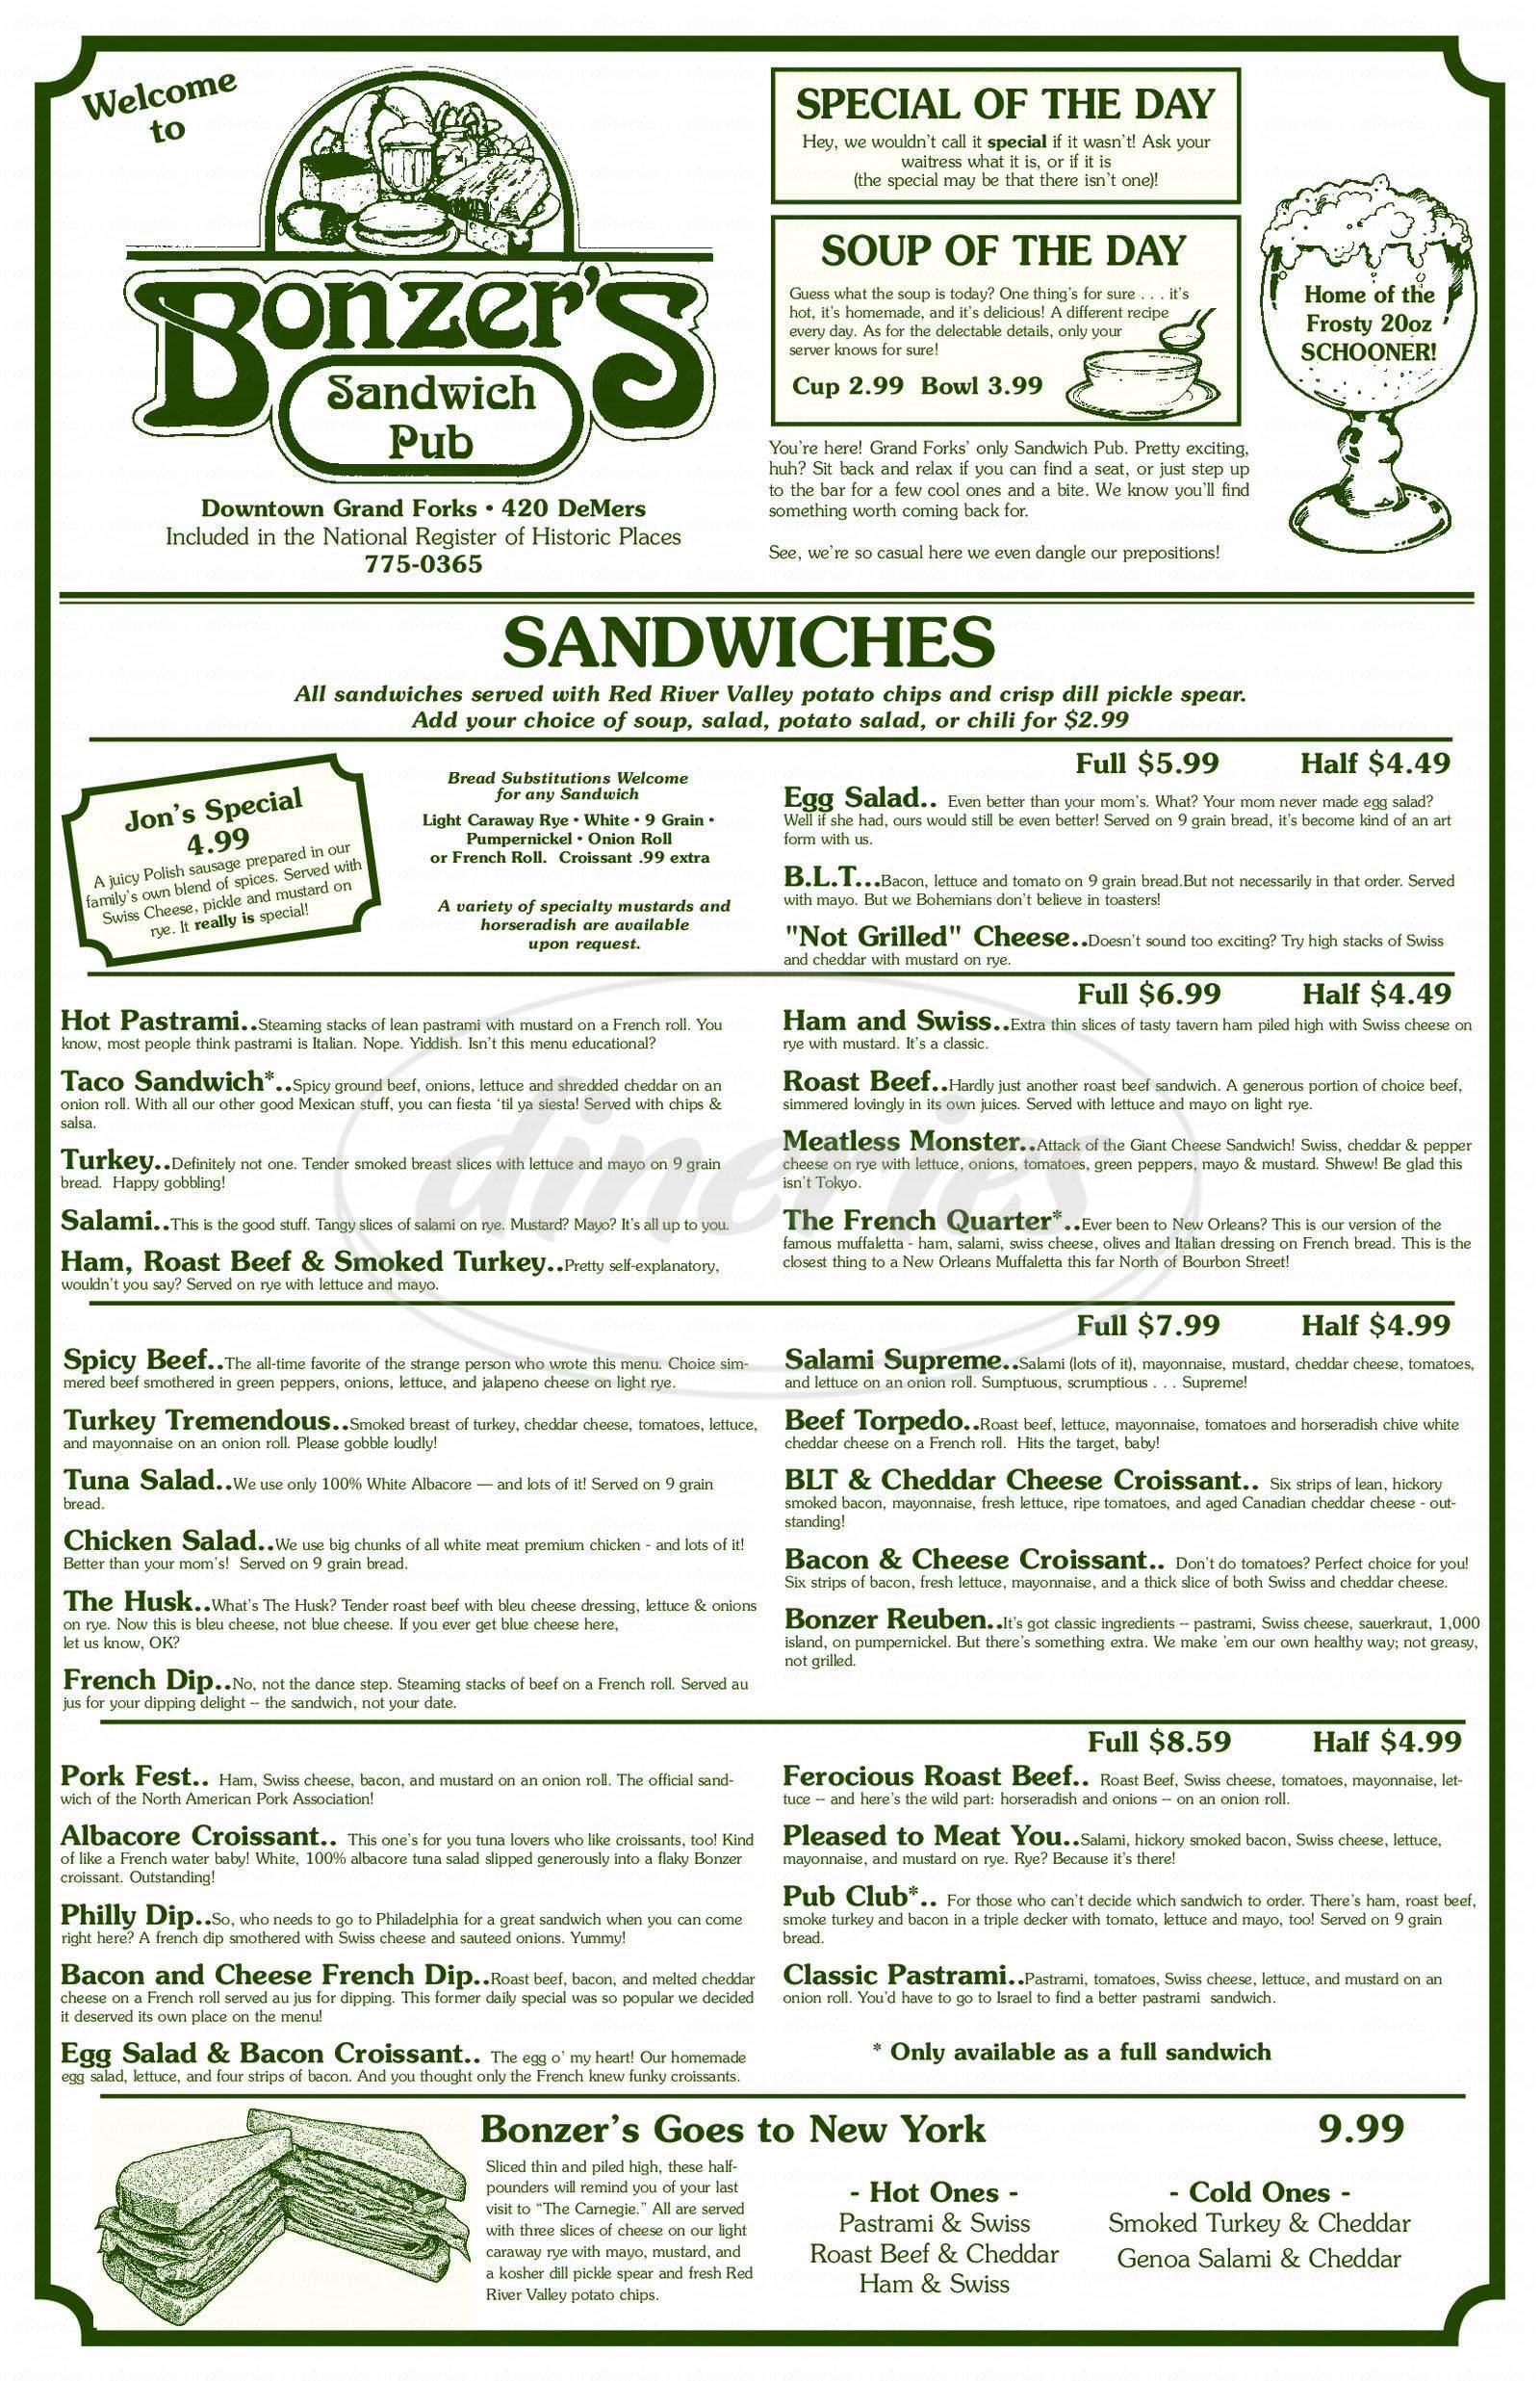 menu for Bonzer's Sandwich Pub